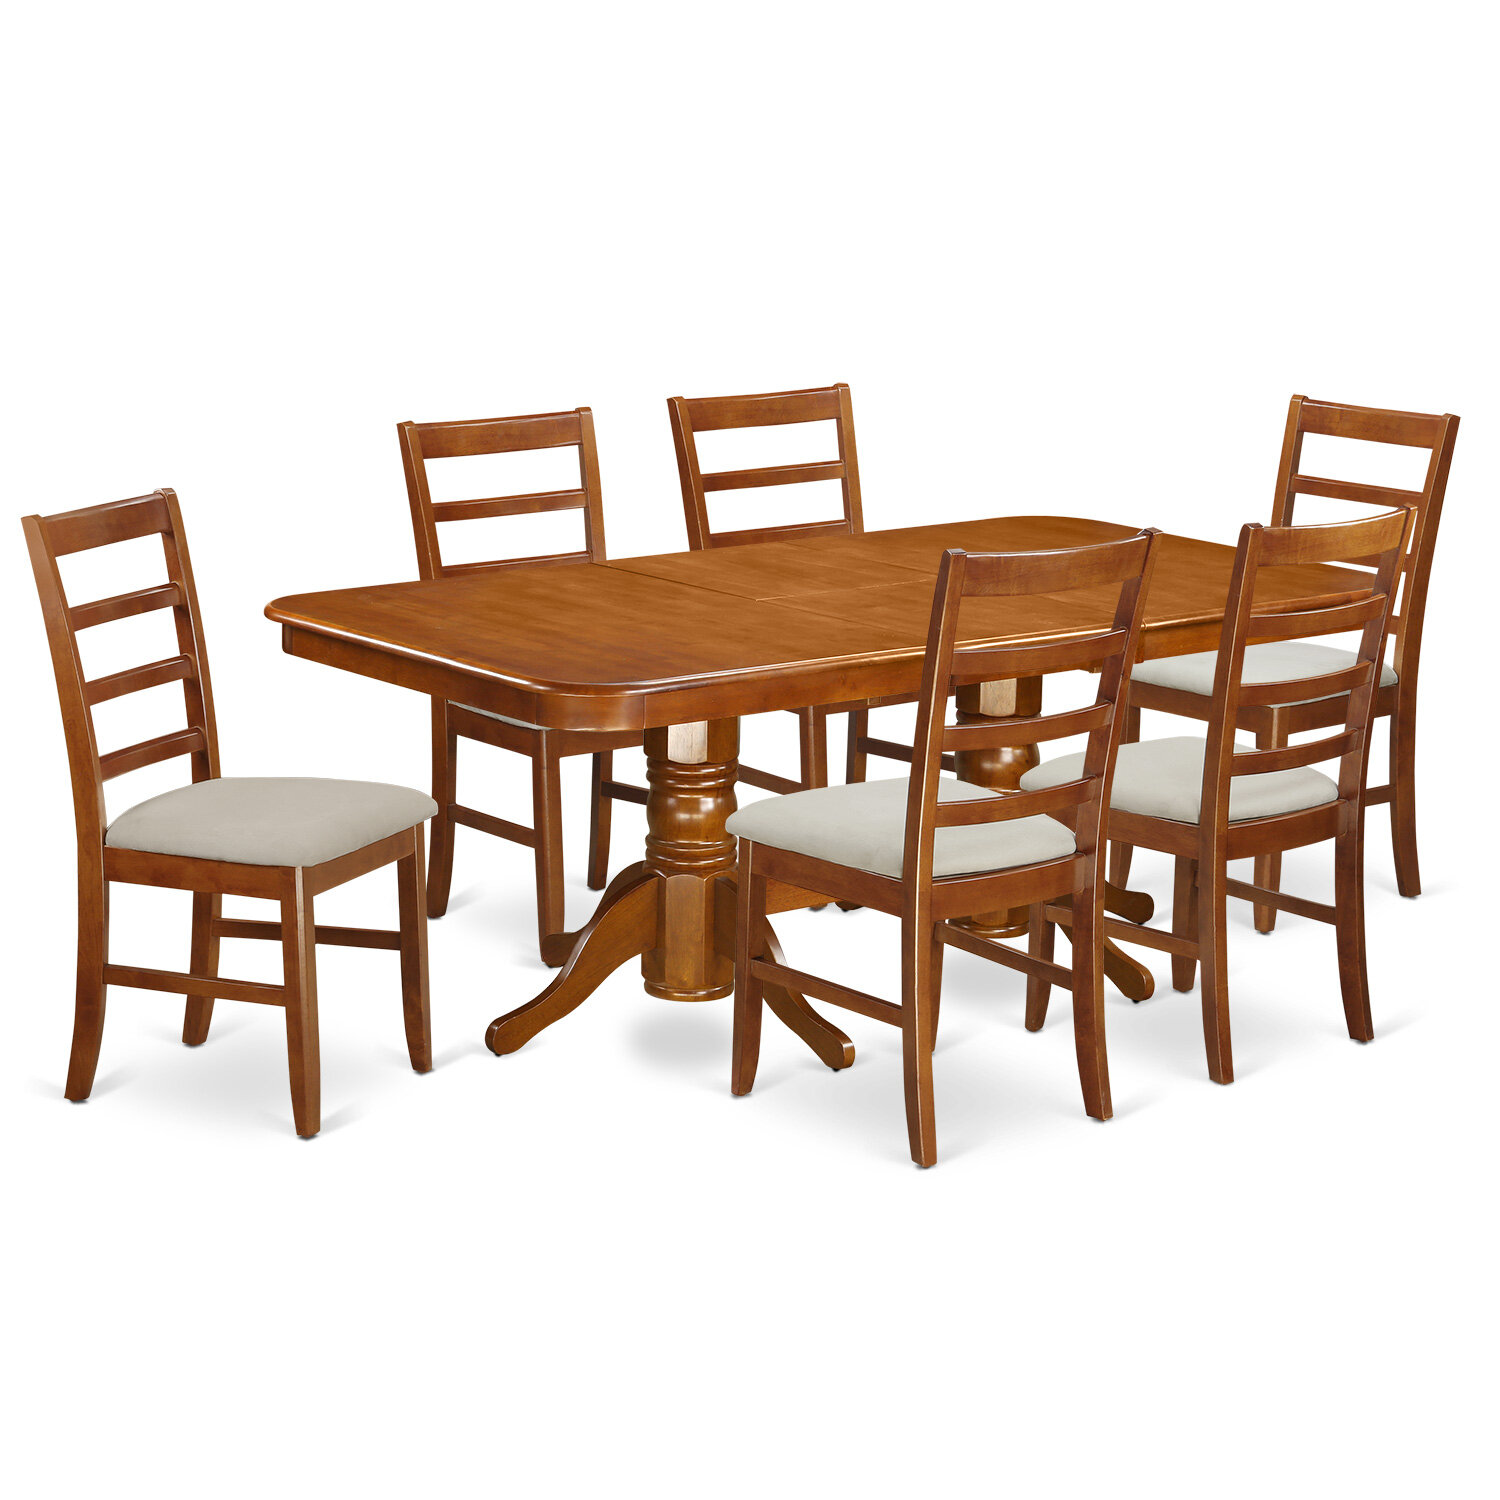 August Grove Pillsbury 7 Piece Wood Dining Set With Double Pedestal Table Legs Wayfair